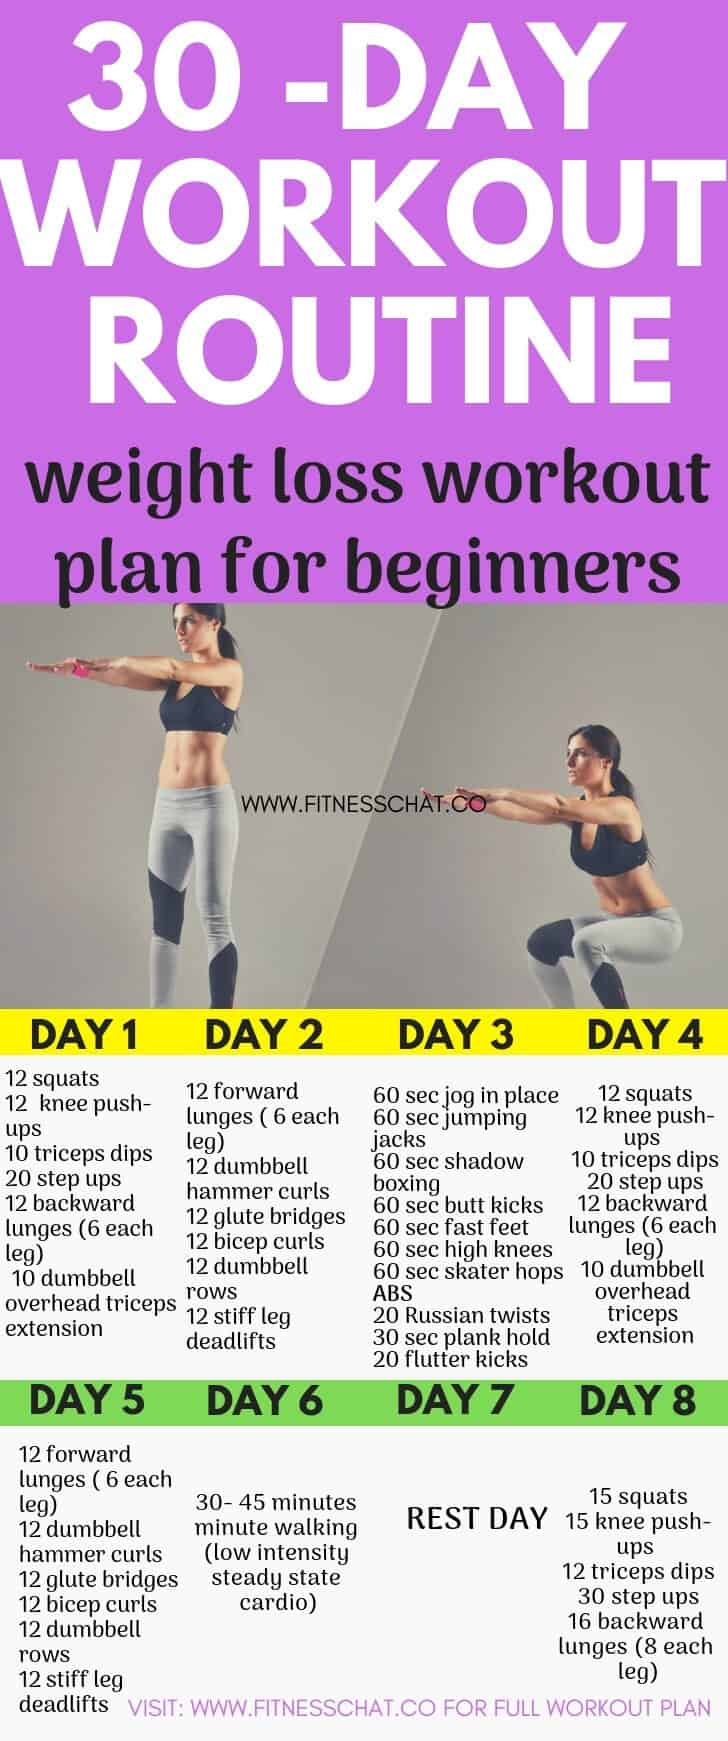 weight loss workout plan for beginners. The only 30-Day Workout Routine for Beginners that burns fat fast